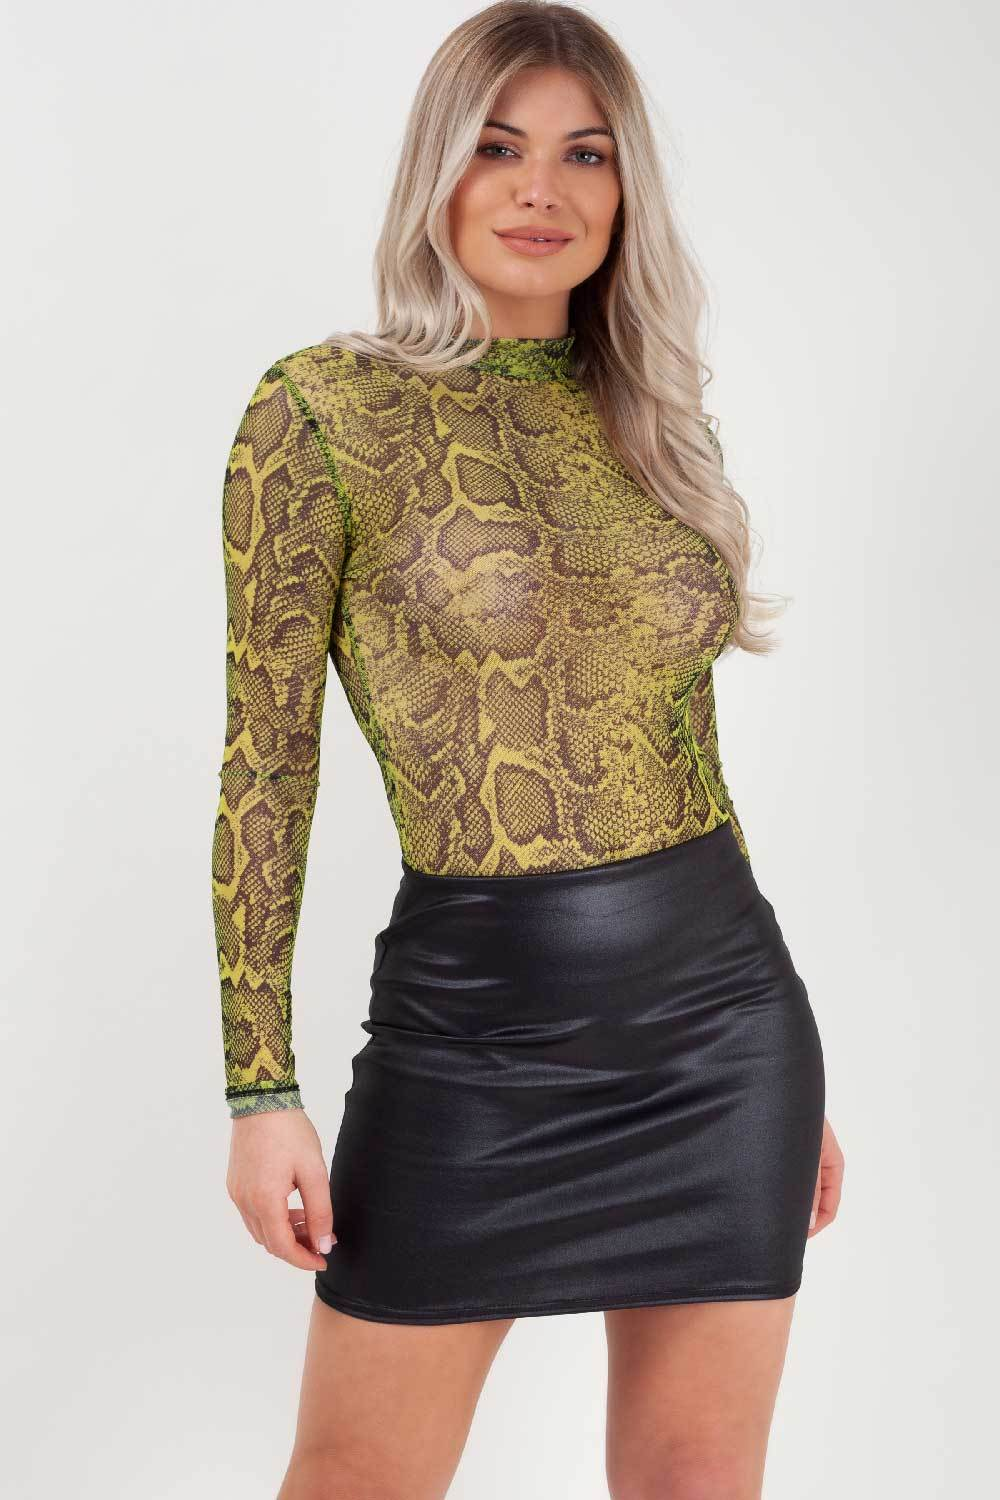 lime green snake print bodysuit